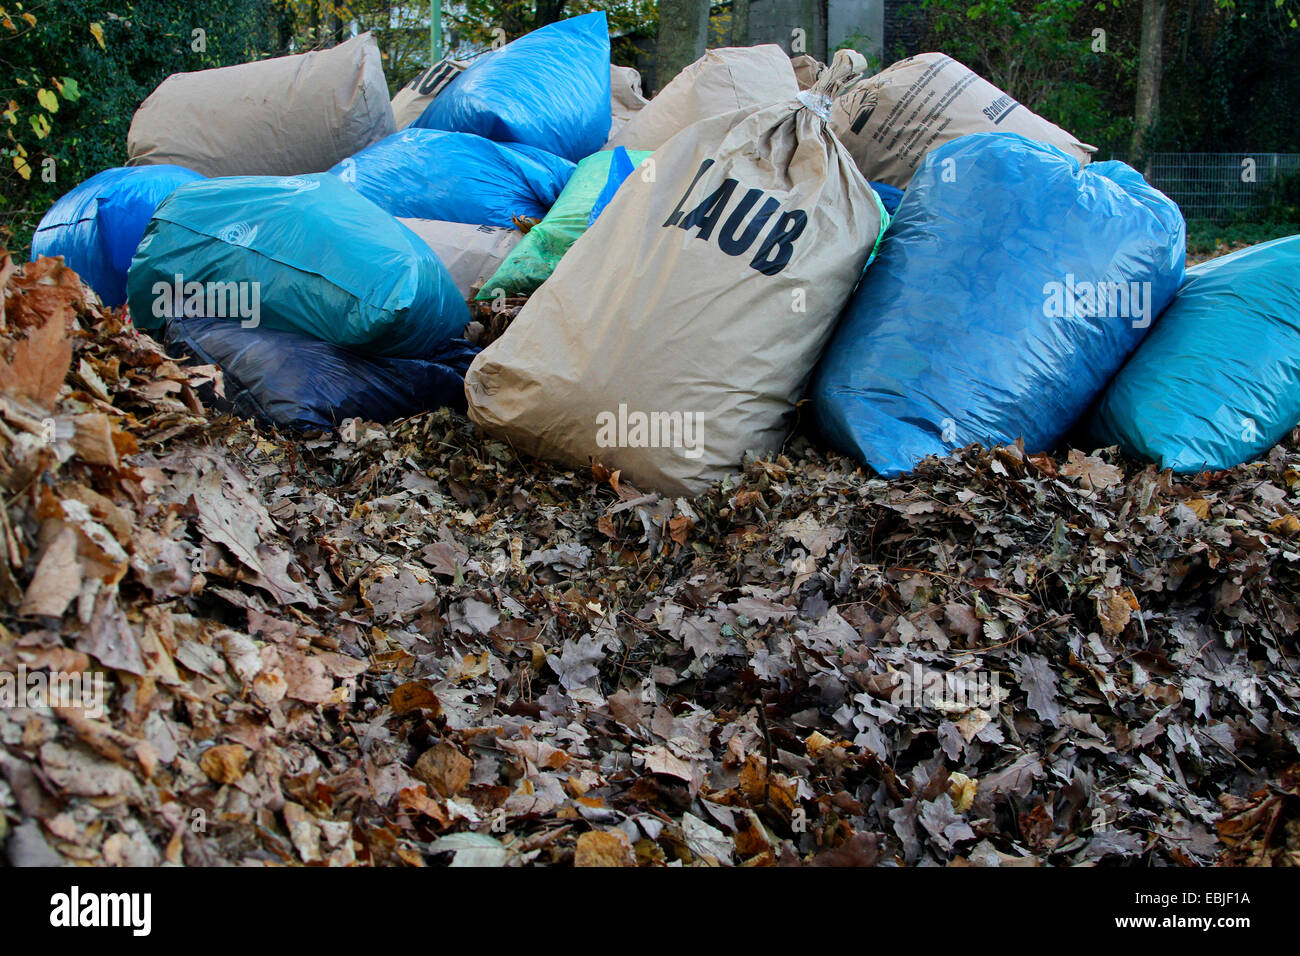 sacks full off autumn foliage on a large foliage heap waiting to be taken to the composting plant, Germany, North - Stock Image